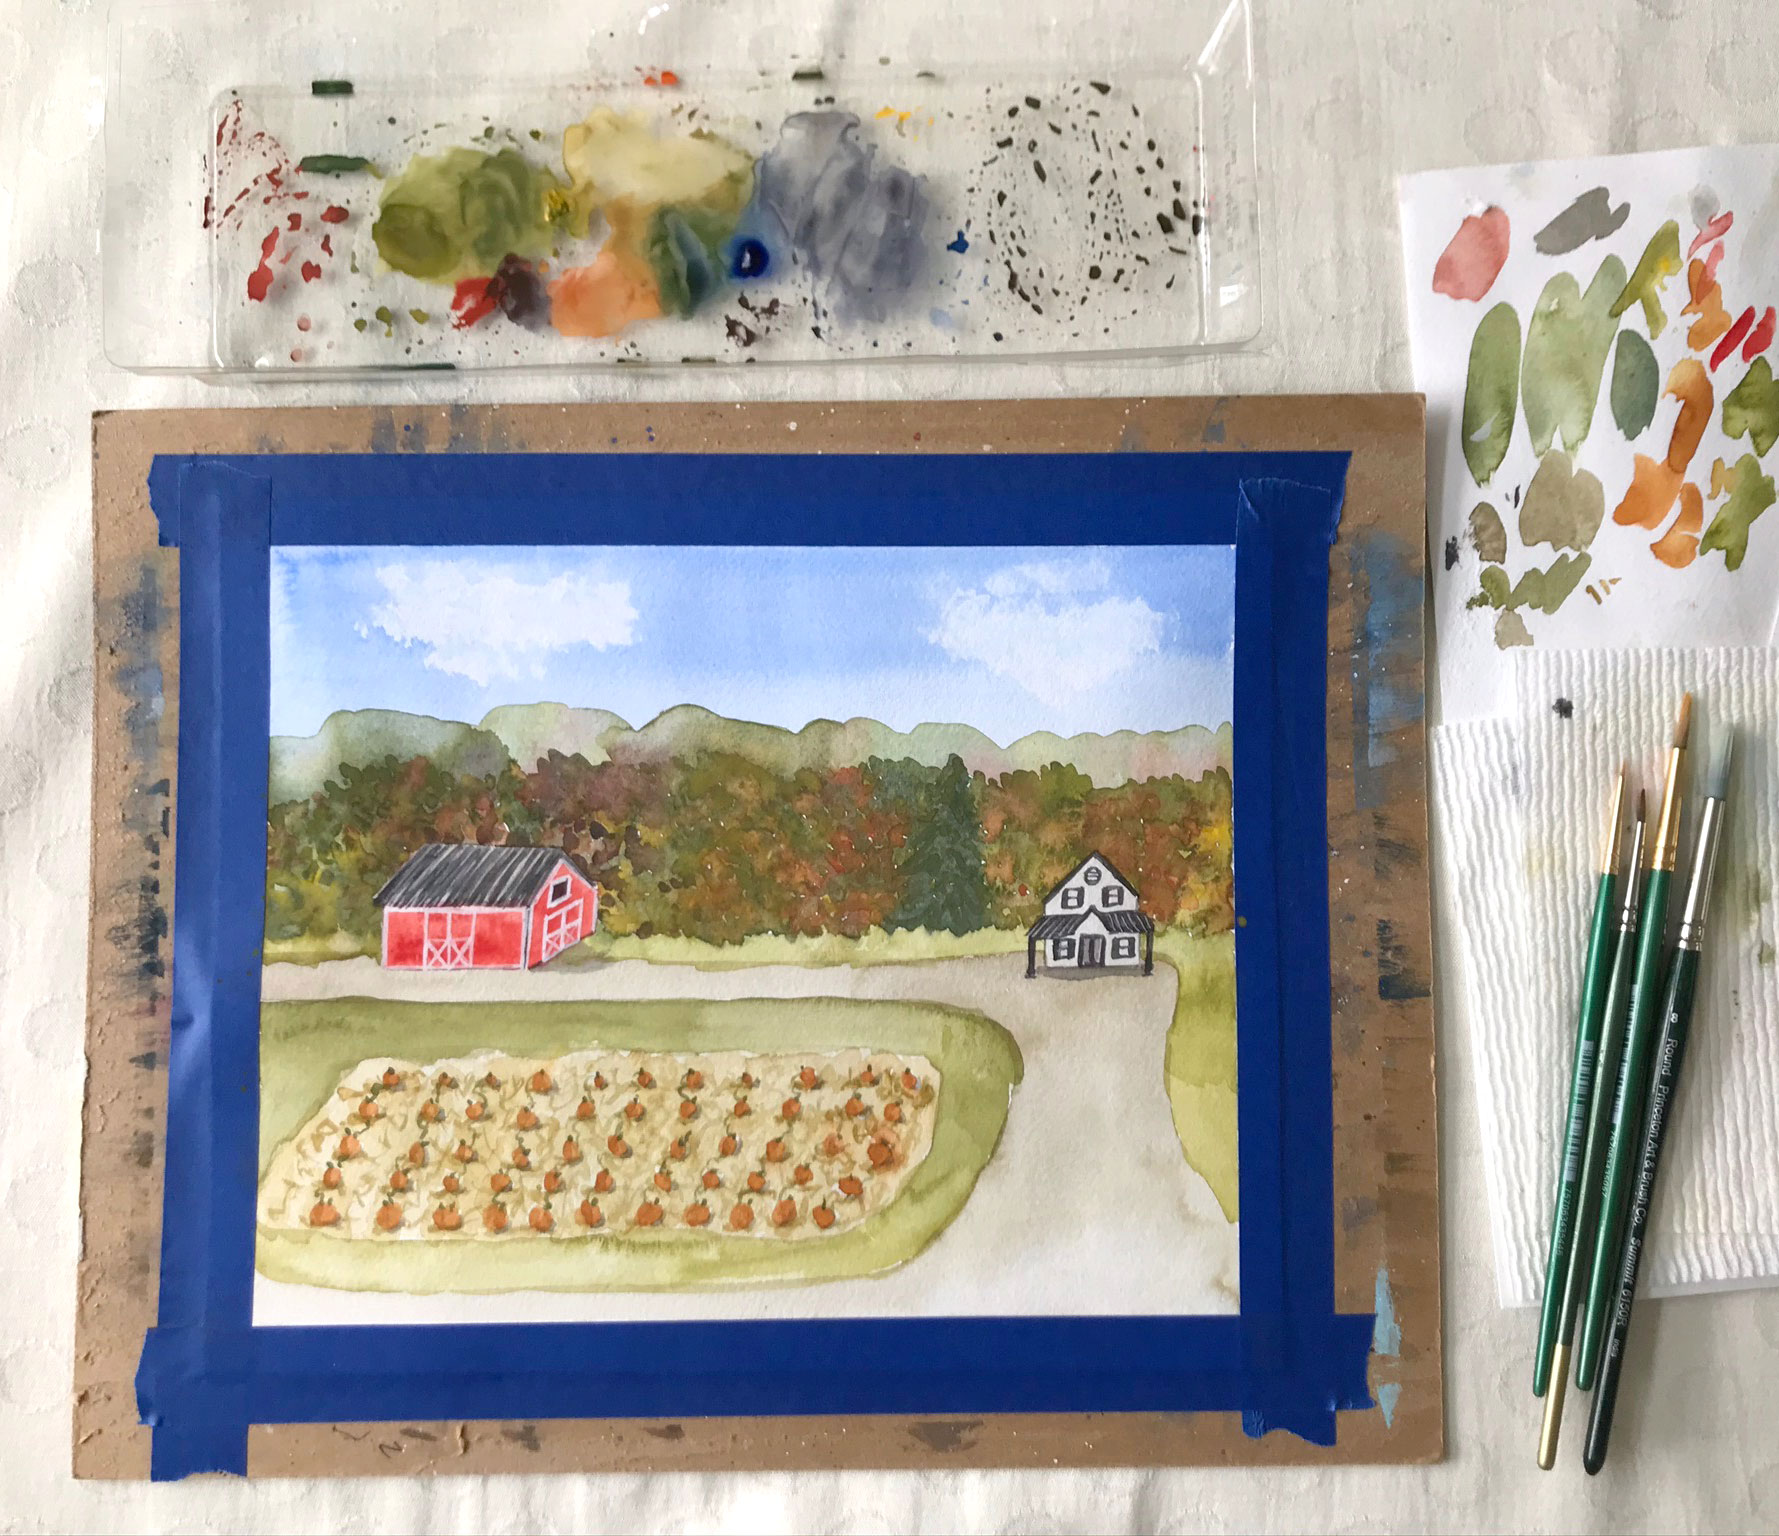 Fun step by step watercolor painting project for fall